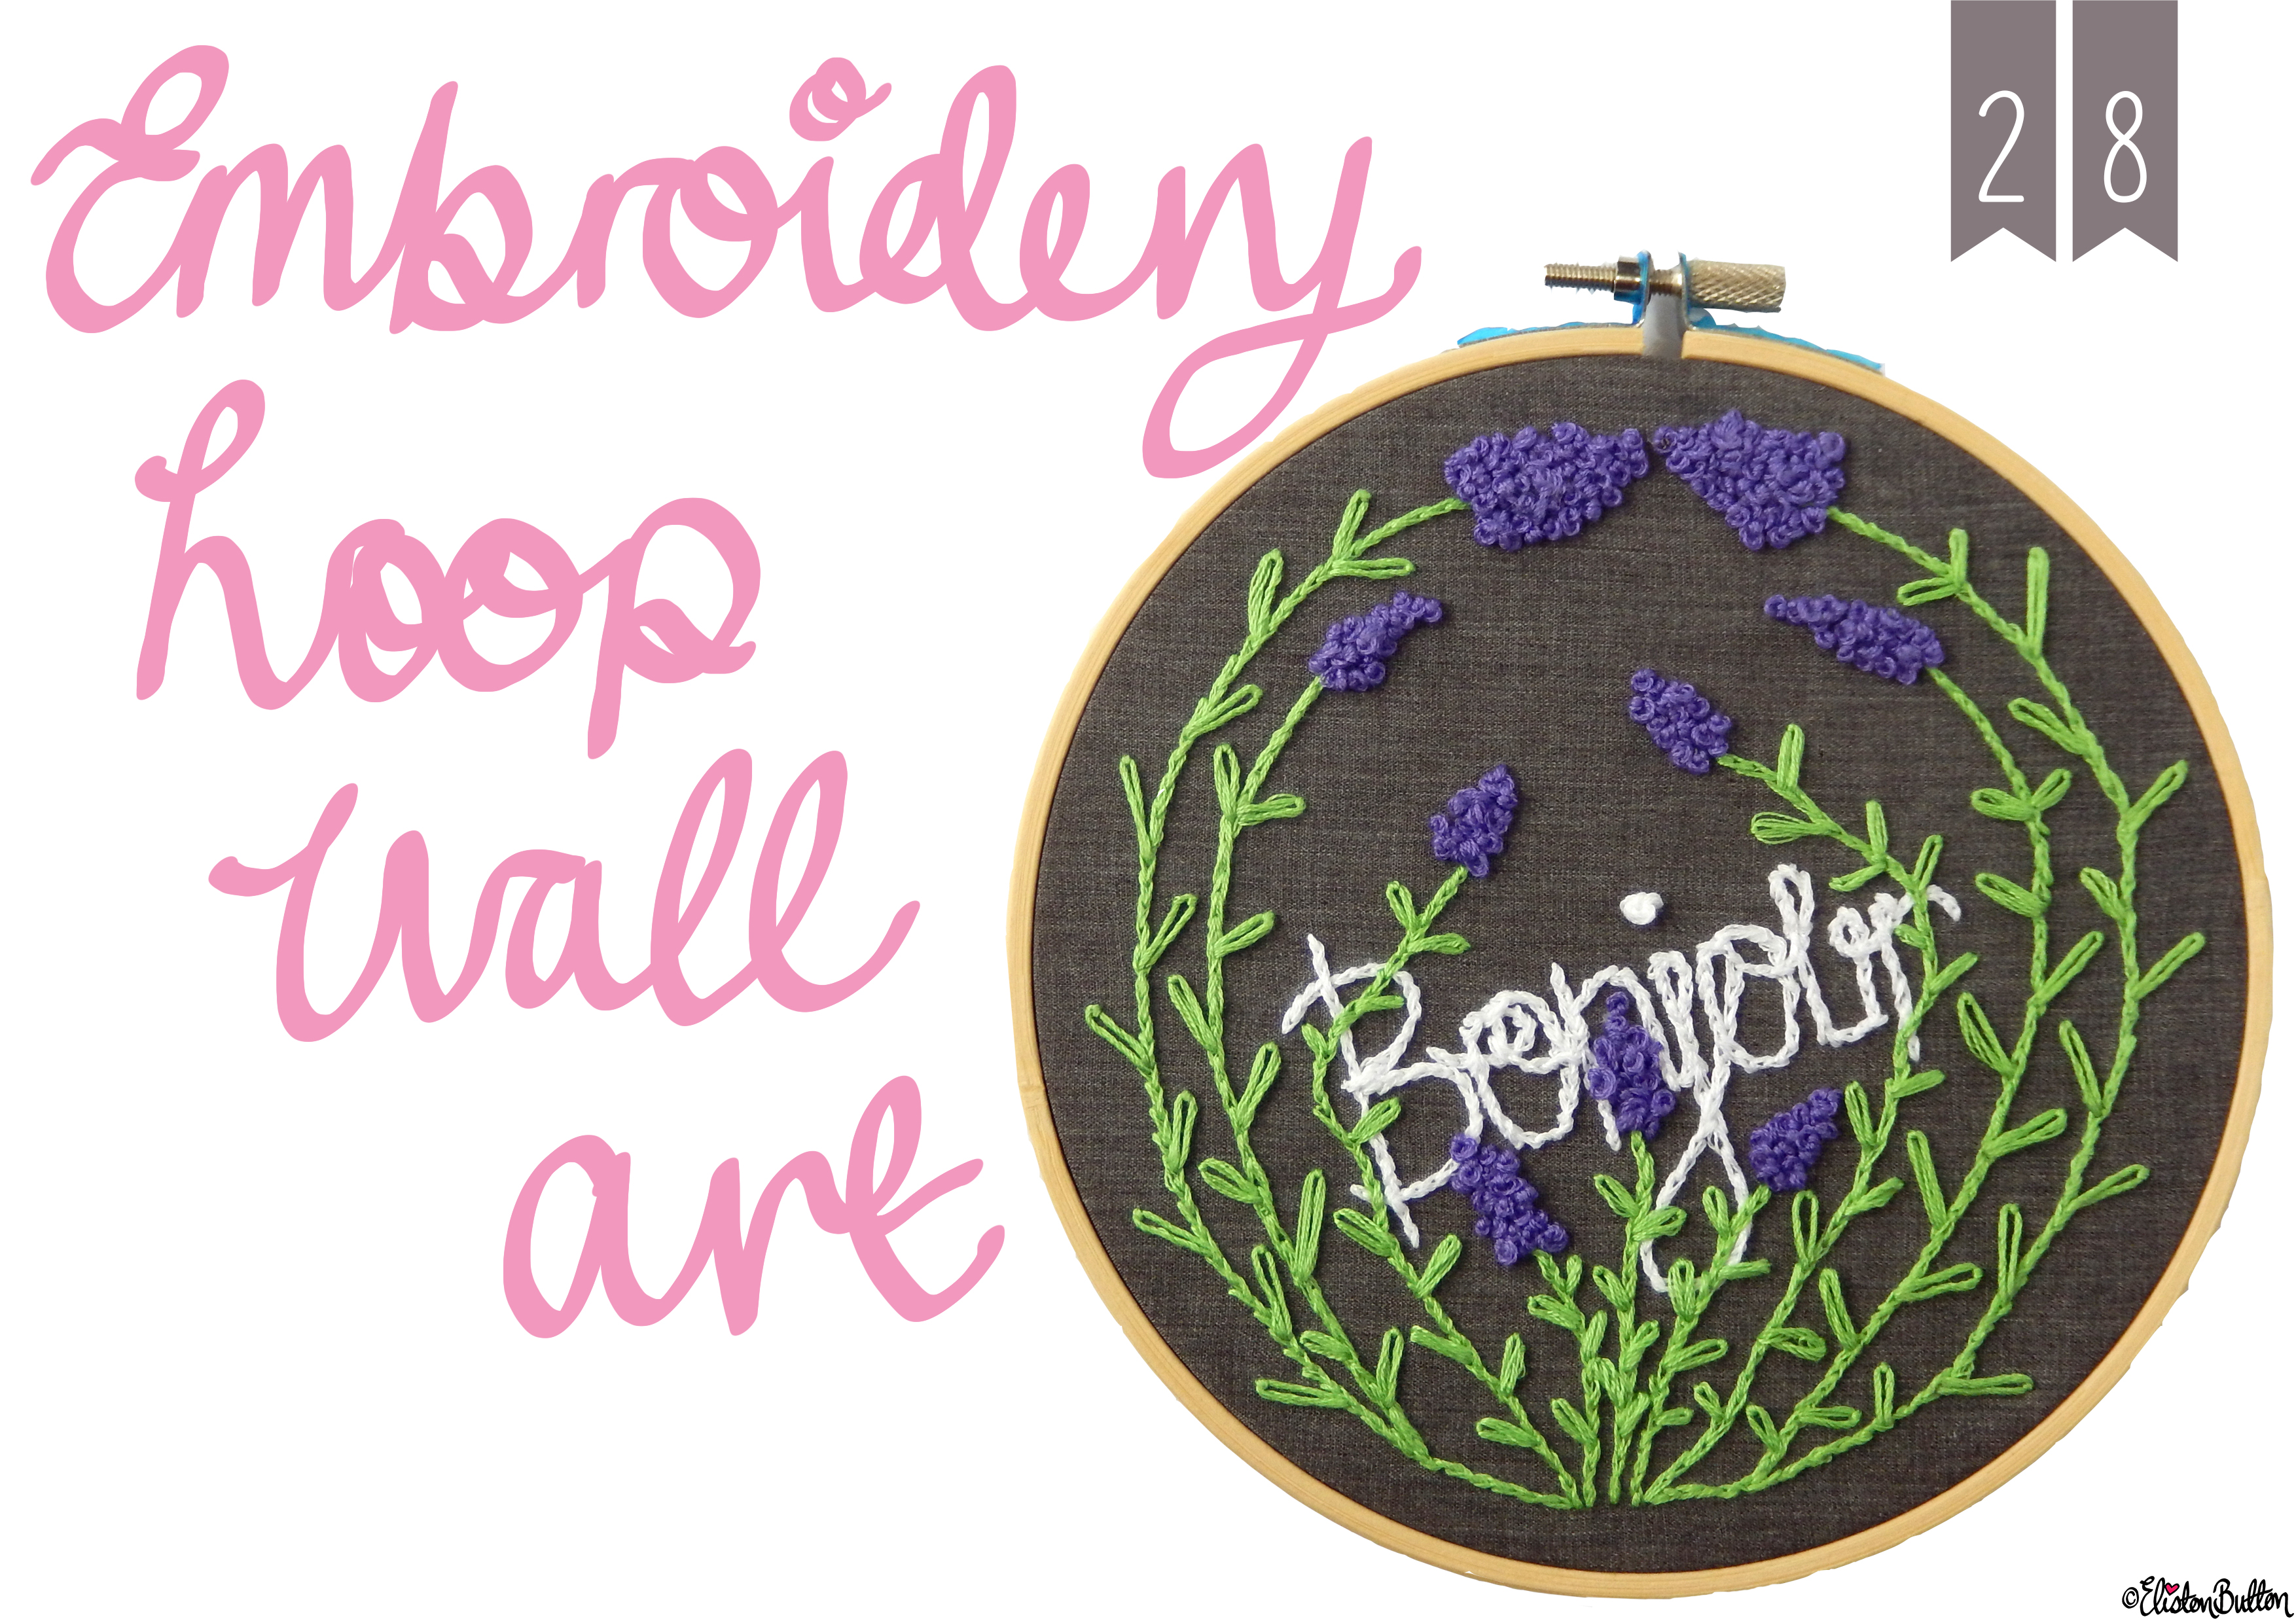 Embroidery Hoop Wall Art - Create 28 - No.28 - Embroidery Hoop Wall Art at www.elistonbutton.com - Eliston Button - That Crafty Kid – Art, Design, Craft & Adventure.